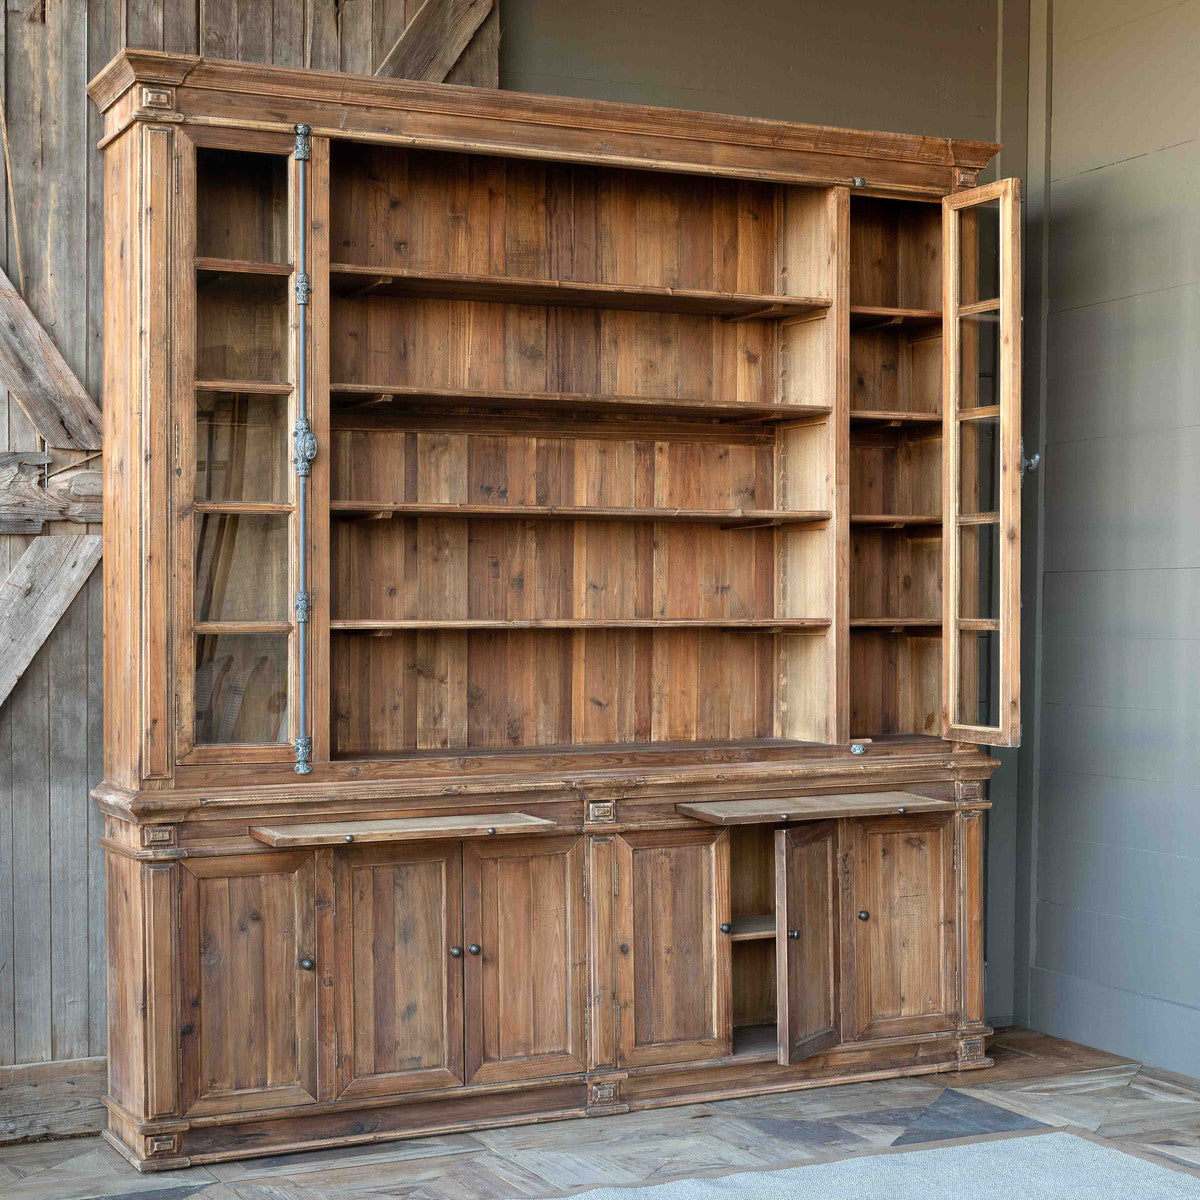 Open Shelving Display Cabinet - Store Display